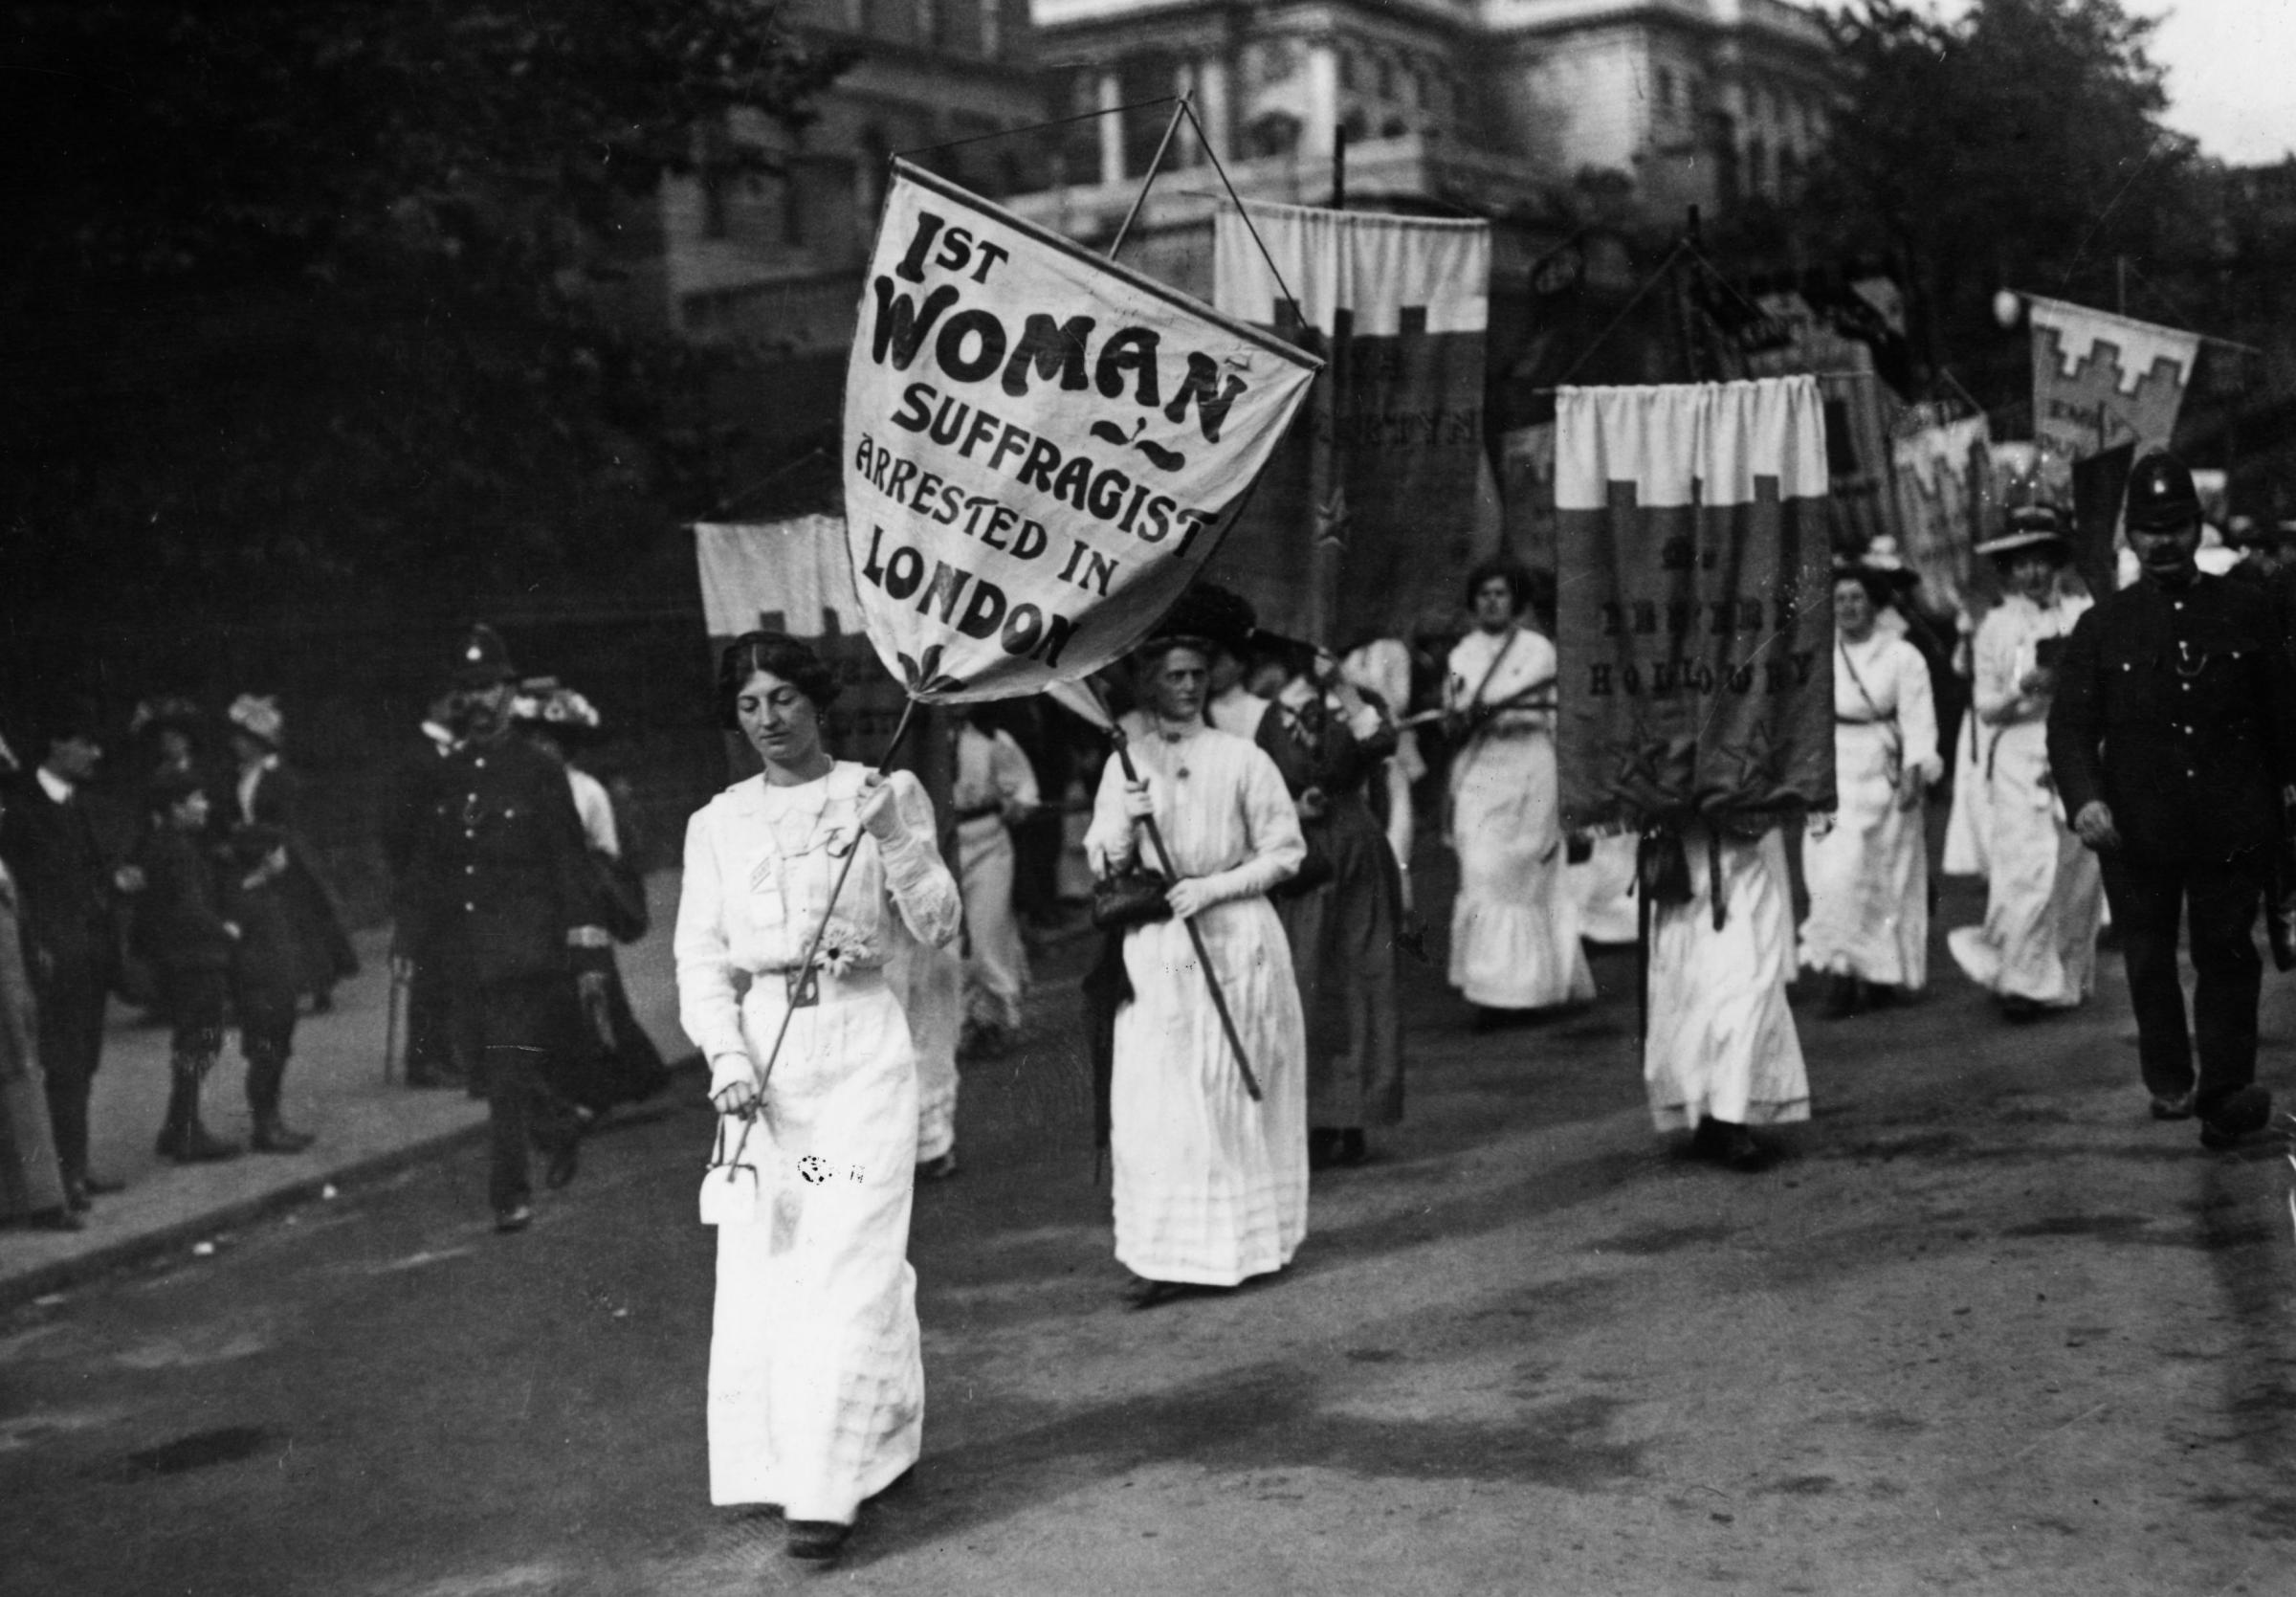 Suffragists believed in doing things by entirely lawful means